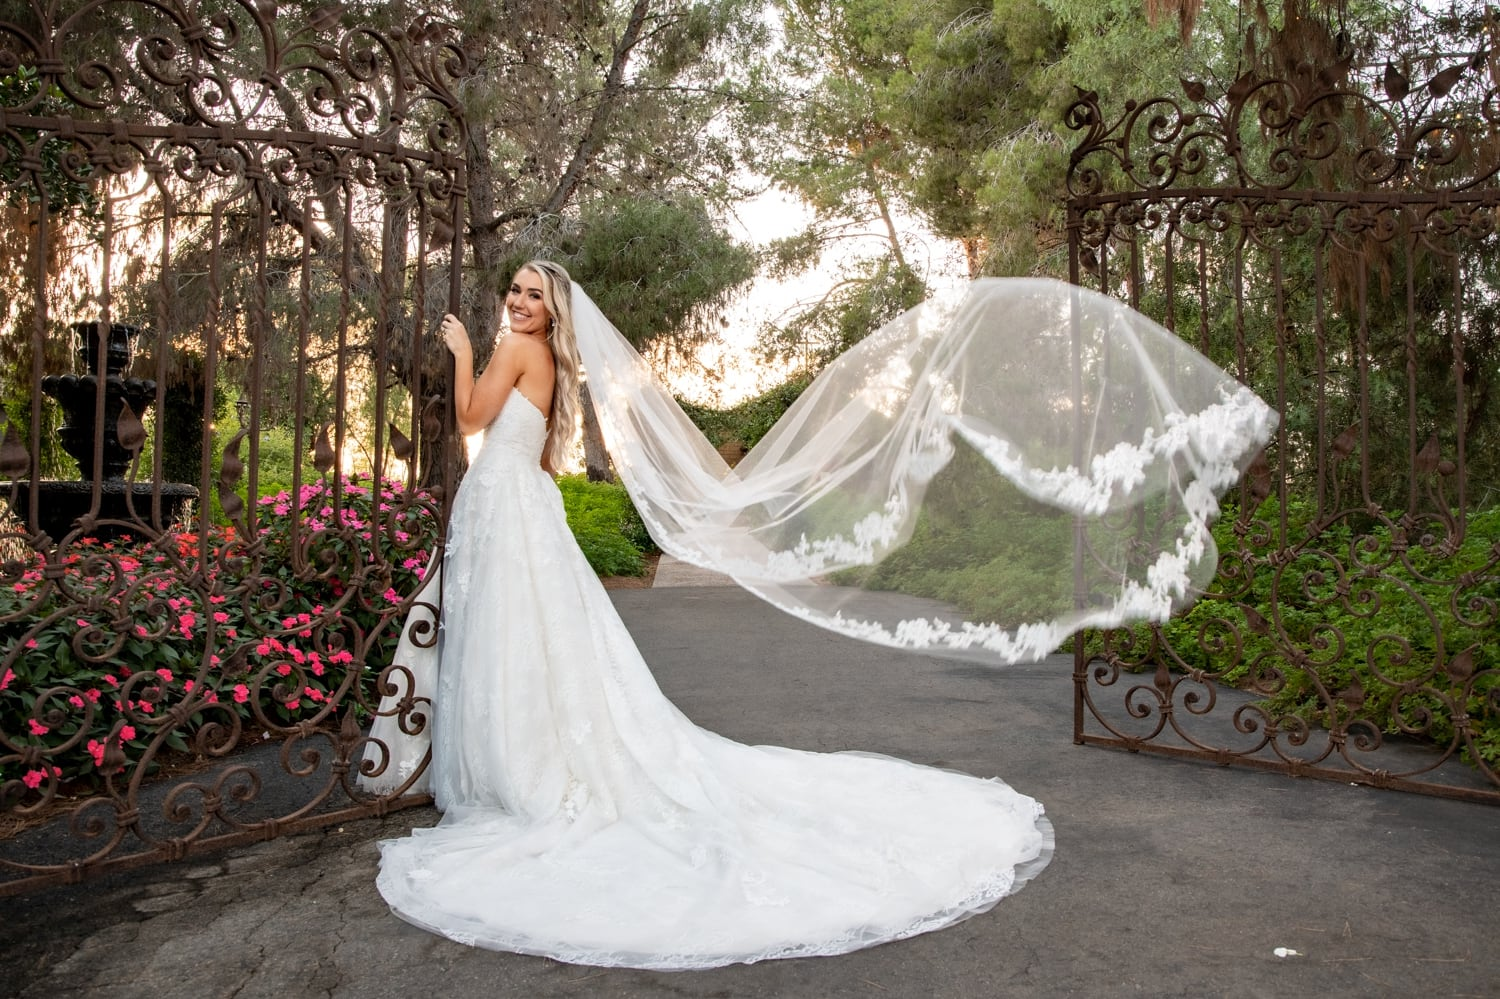 Bride with her veil flowing in the air at the gate at Ethereal Gardens.